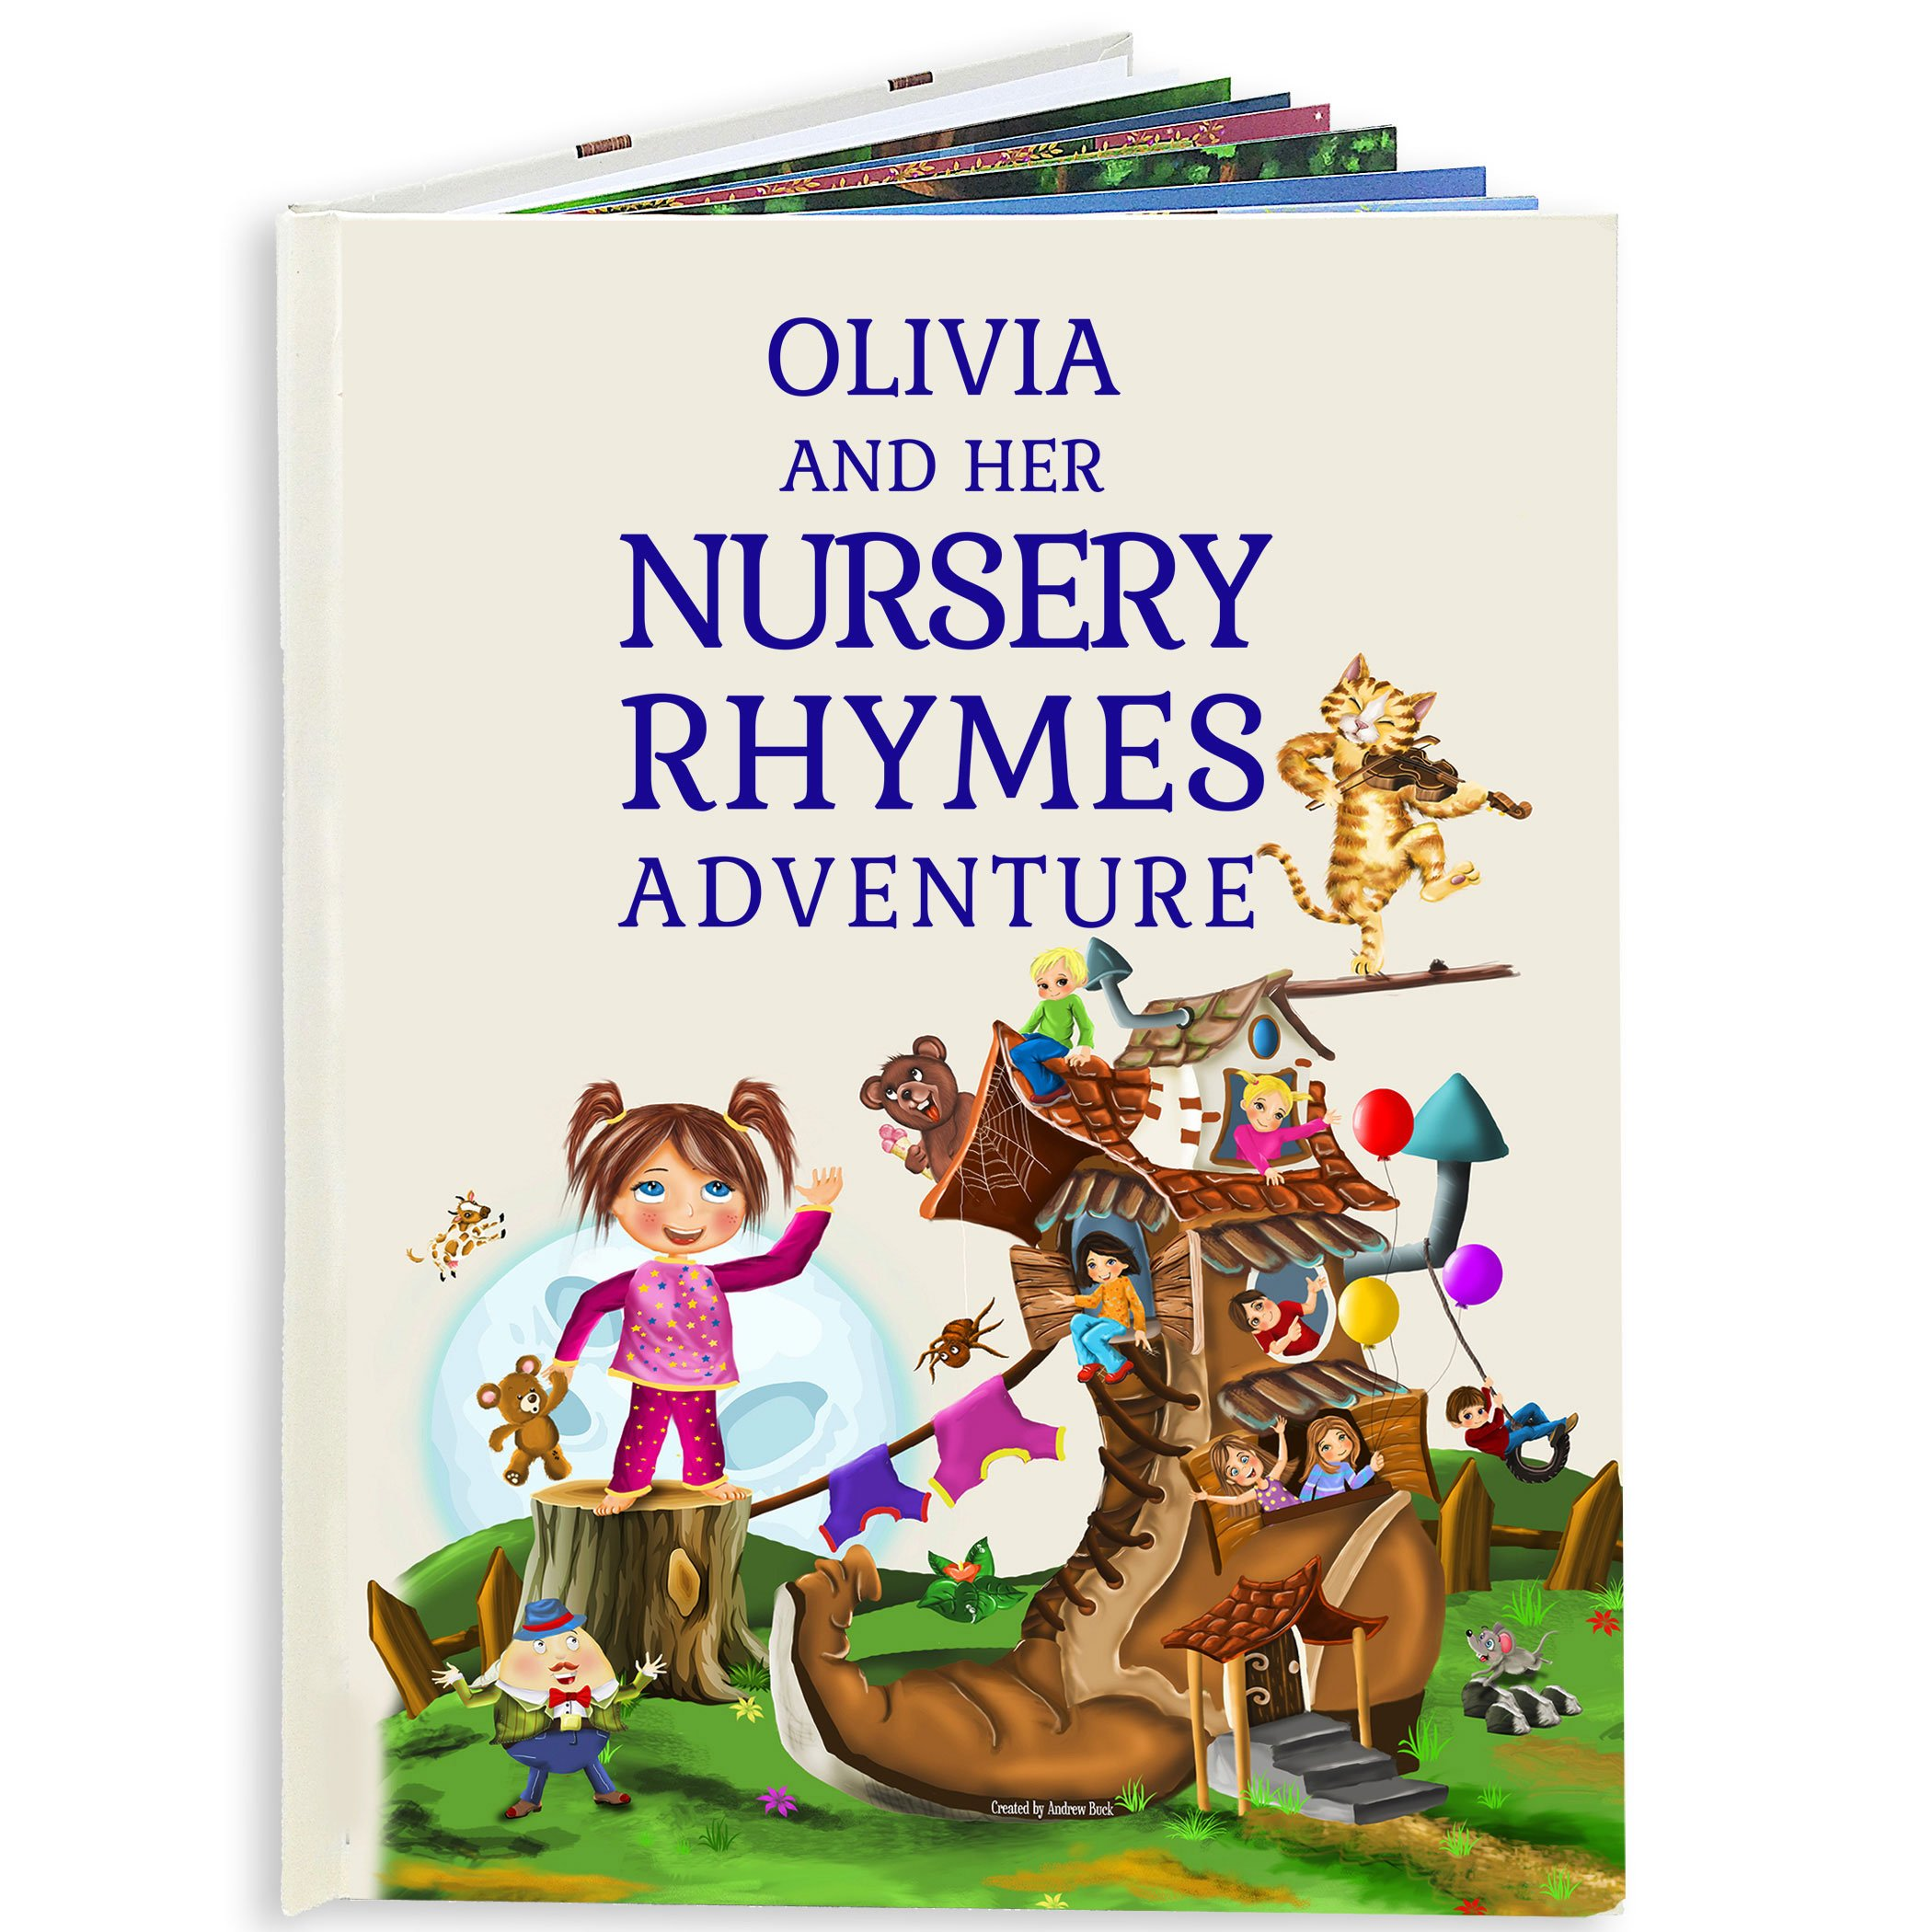 Personalized Nursery Rhymes and Modern Poems Book for Baby and Child - 1st Birthday Keepsake Gift